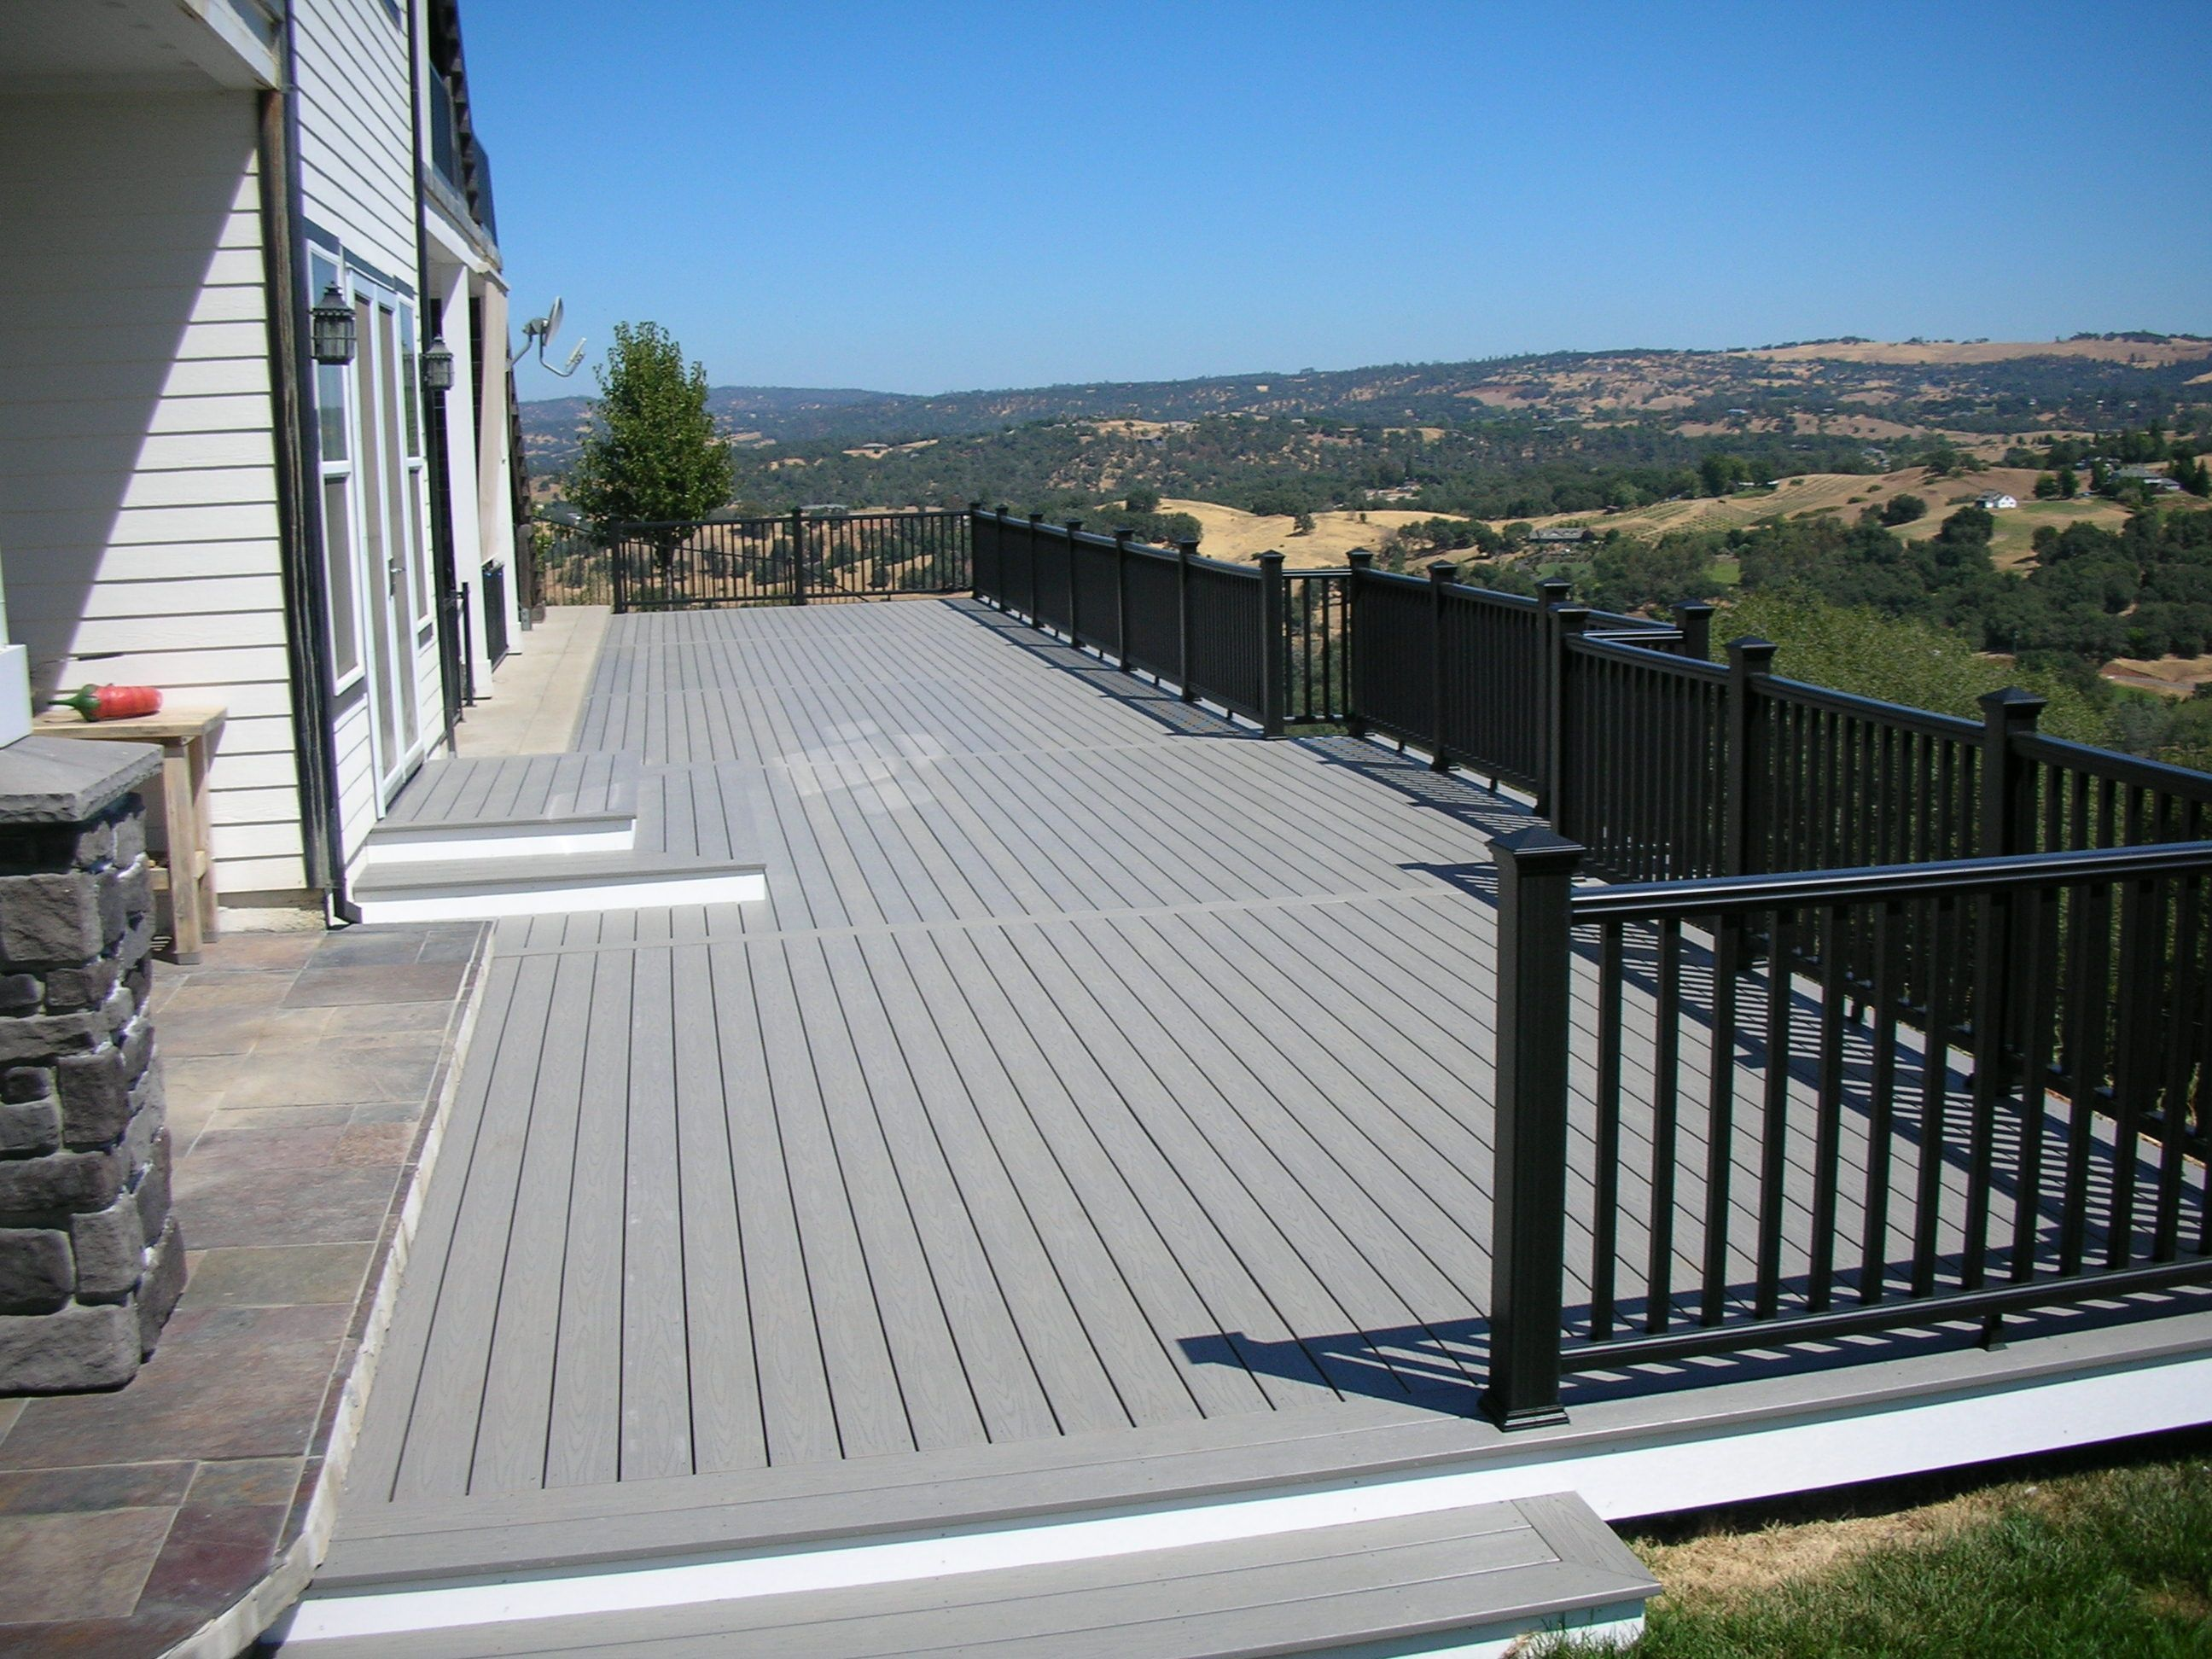 Pedestal Fence Deck System Price Cost Of Composite Decking Per